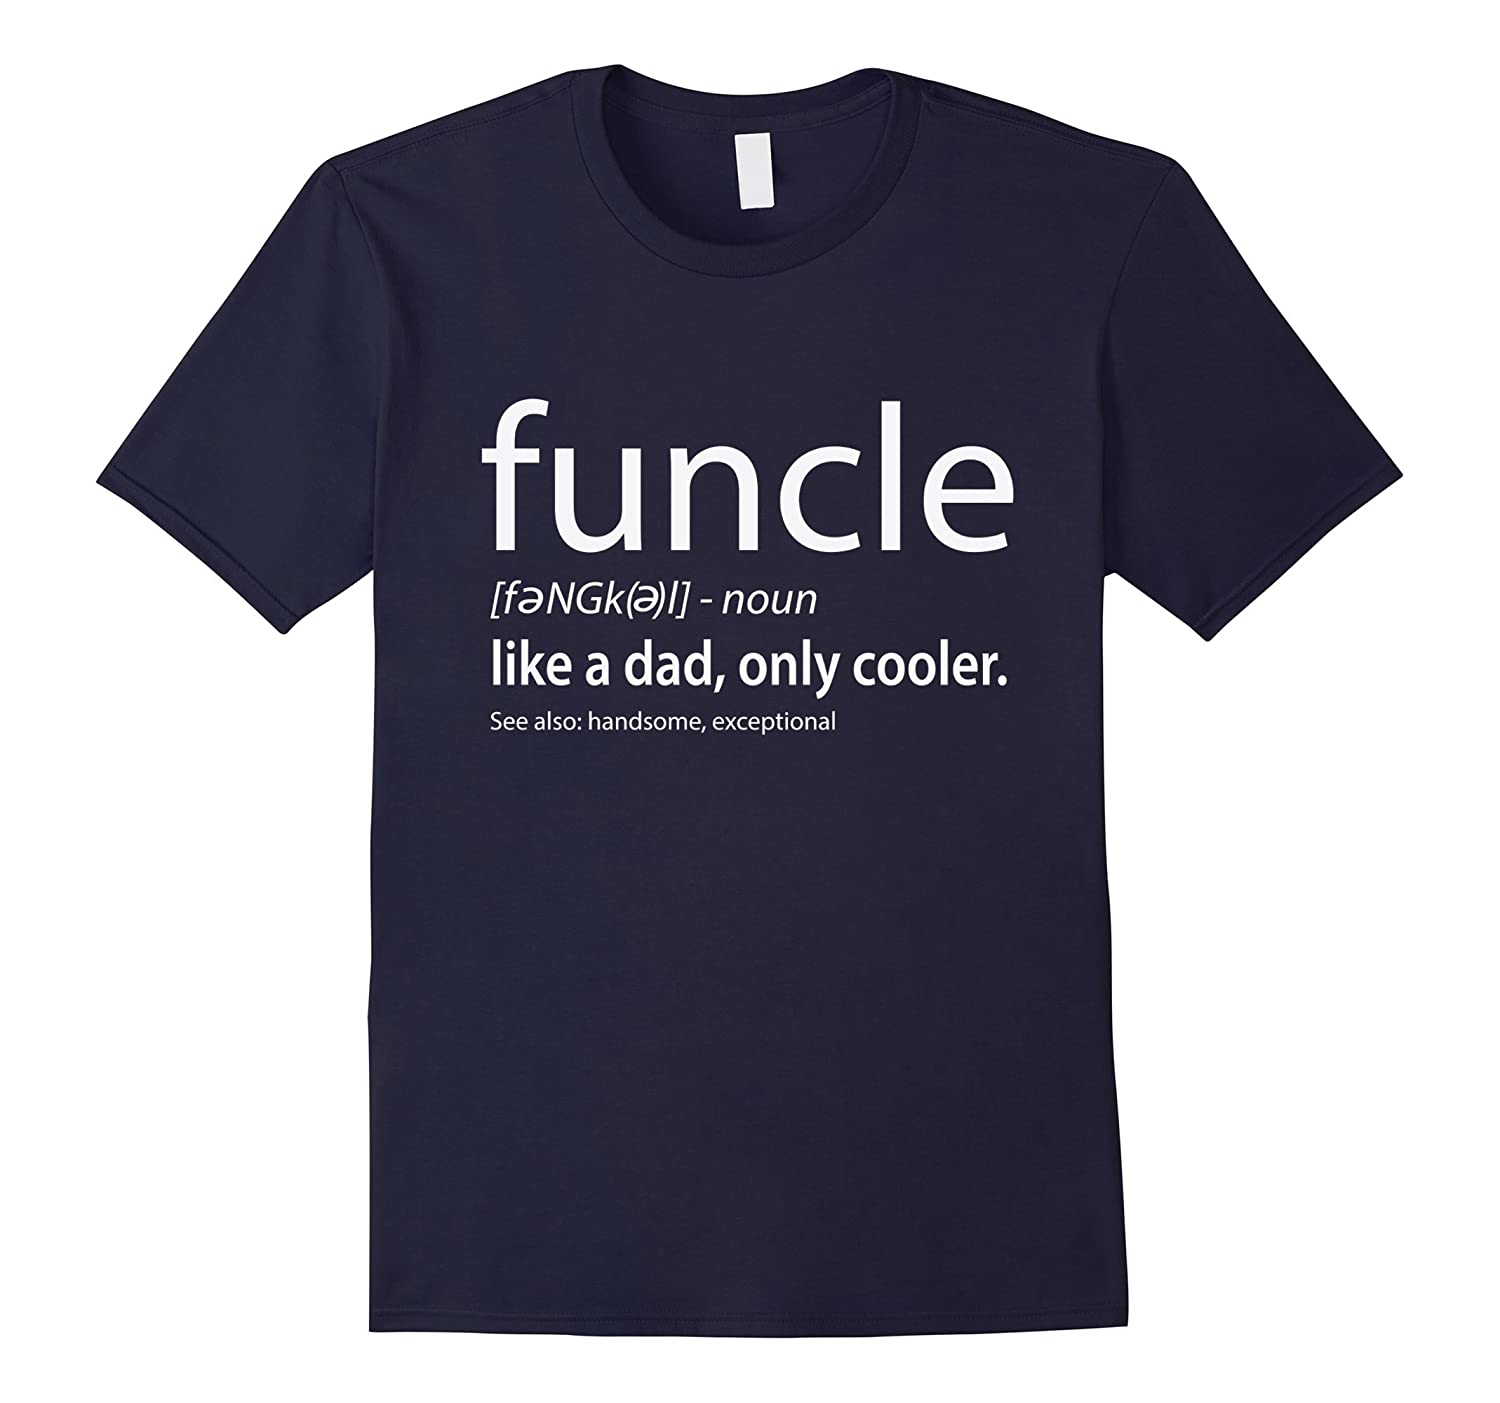 Funcle Definition T-shirt - Gift for the Best Uncle-T-Shirt